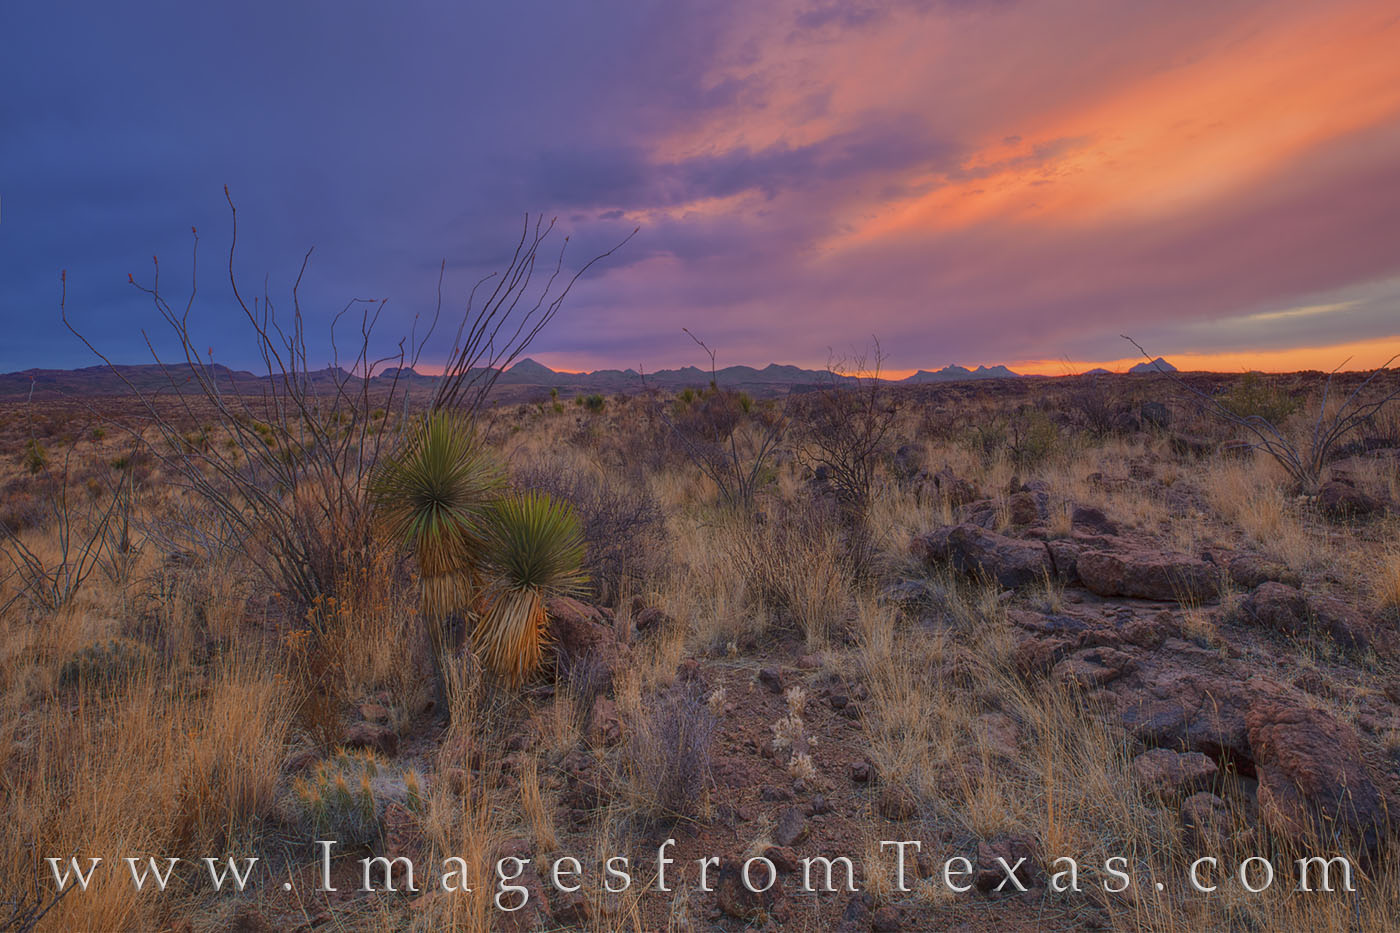 big bend ranch state park, big bend ranch, interior, chihuahuan desert, sunset, yucca, spring, desert, ocotillo, west texas, big bend landscapes